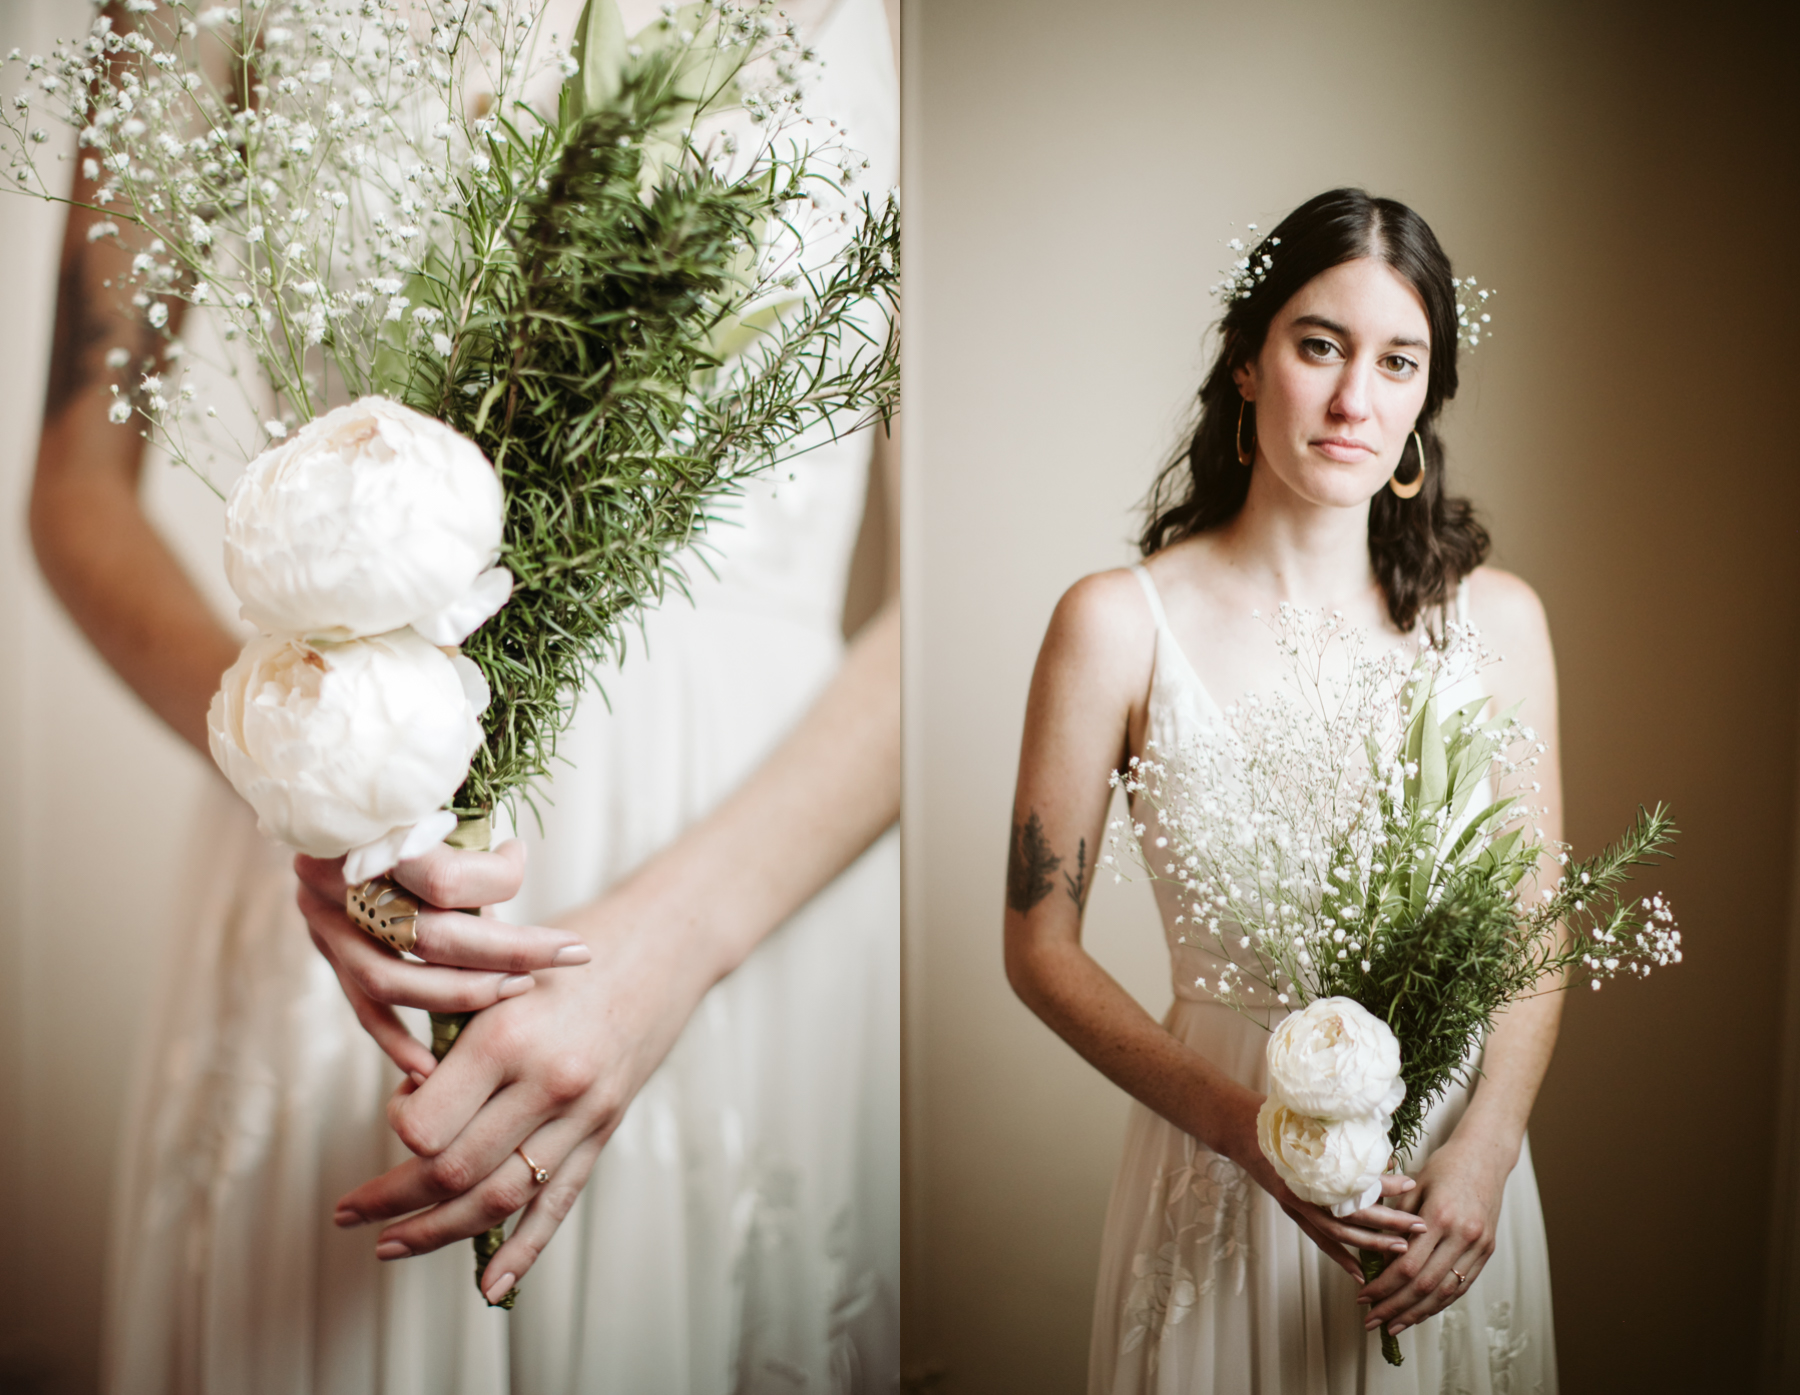 Elegant indoor bridal portraits at a downtown knoxville wedding at redeemer church